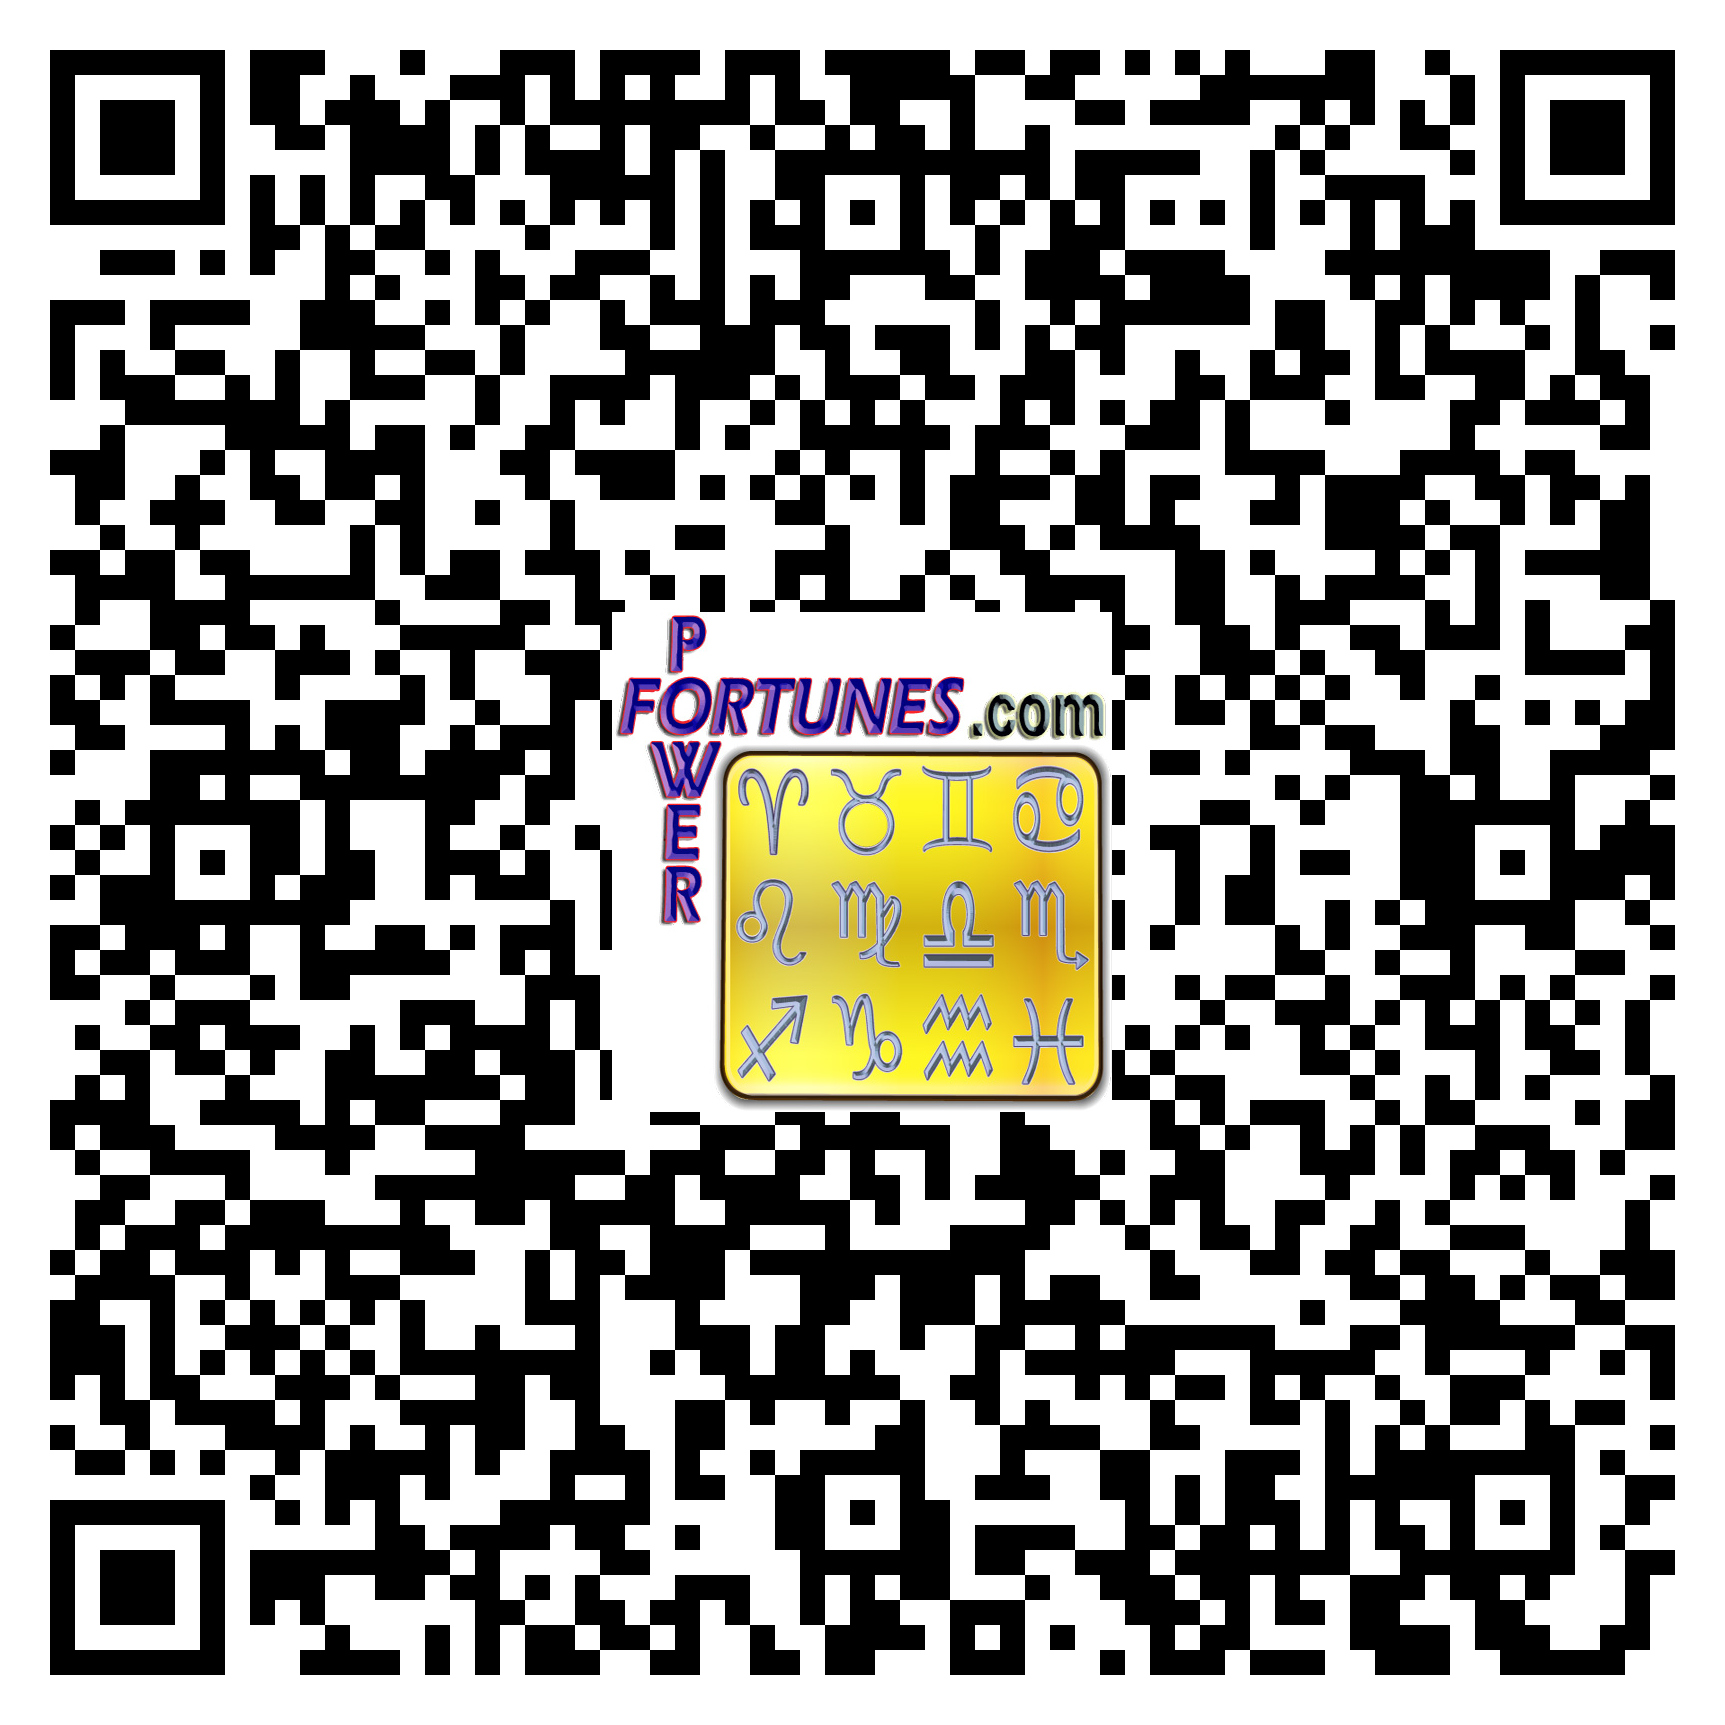 PowerFortunes.com QR Code